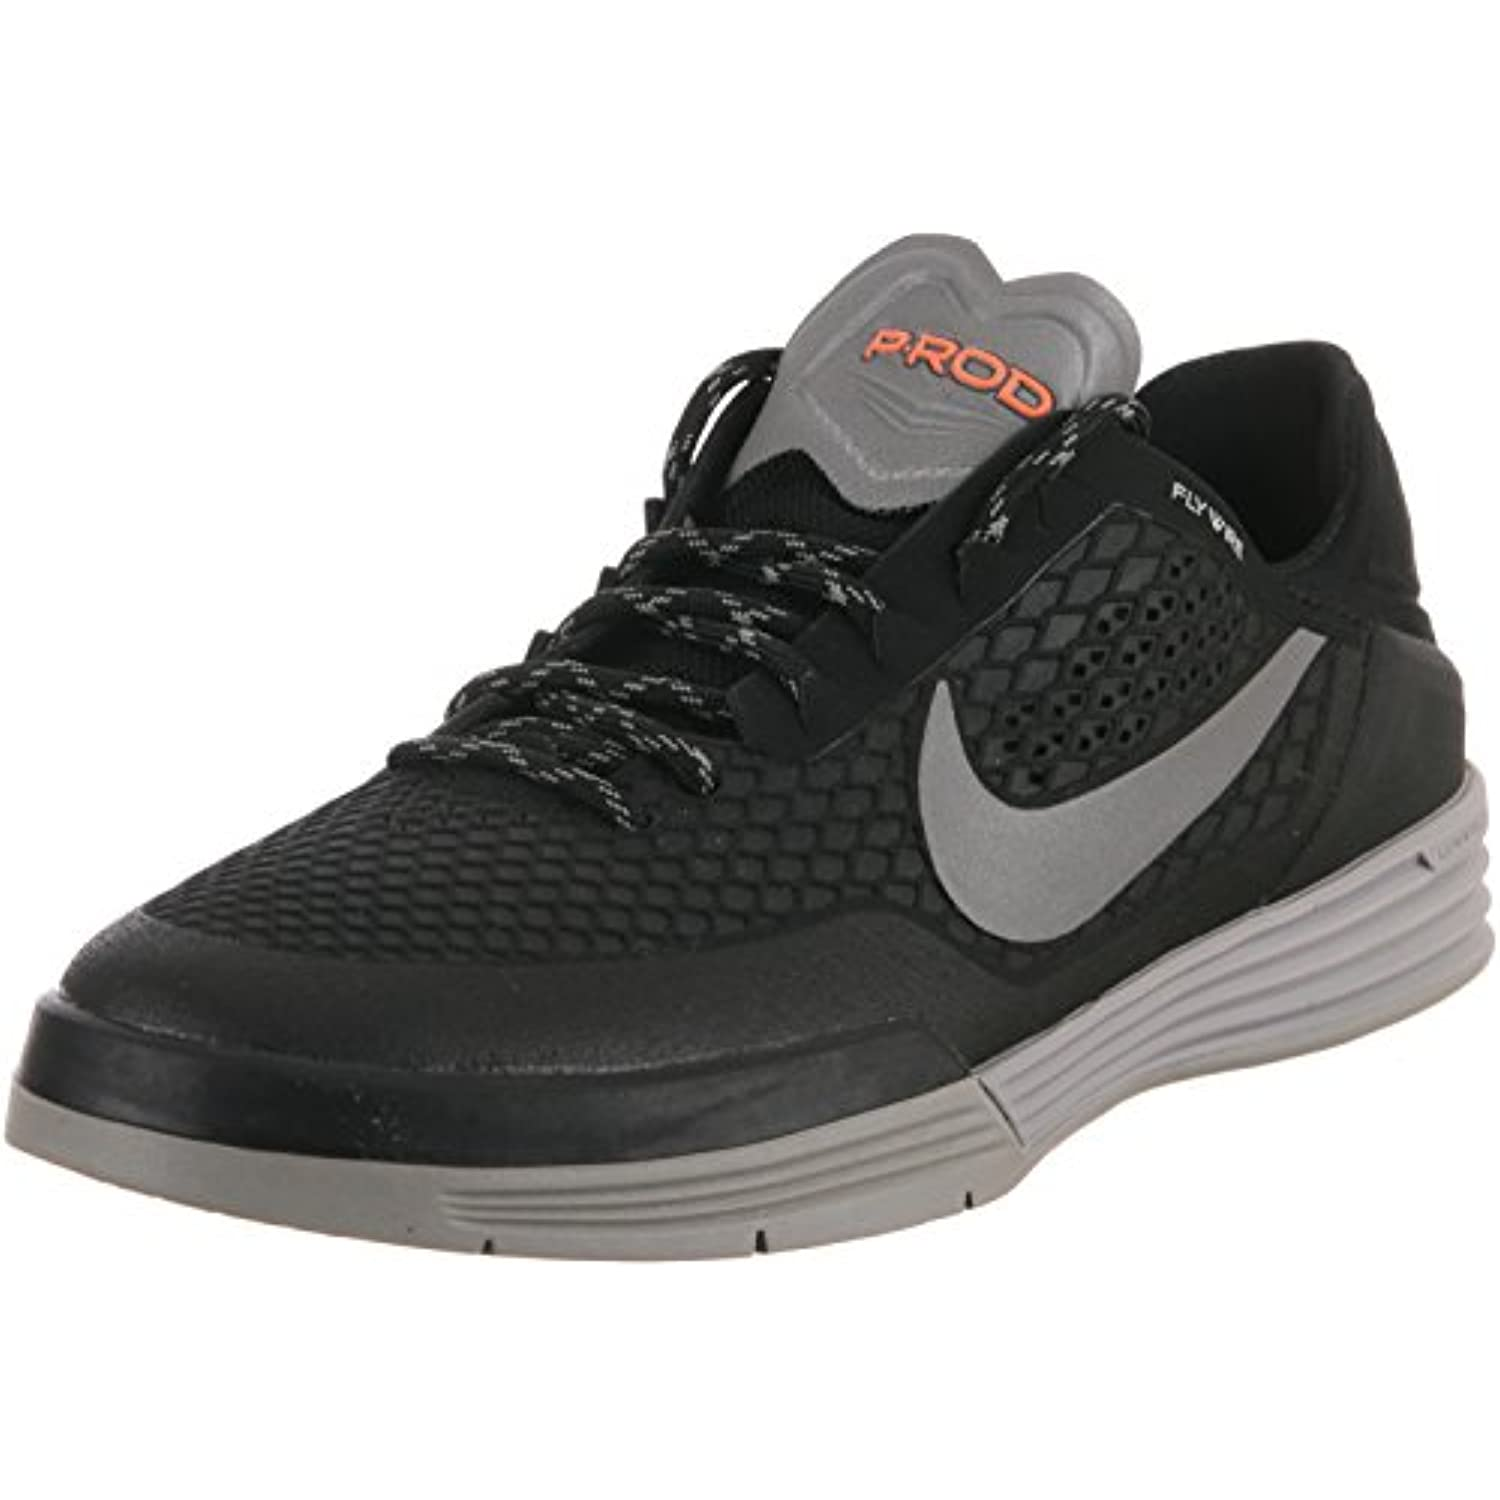 super popular 3aa74 27ba5 NIKE SB Paul Rodriguez 8 Shield Baskets Baskets Baskets pour Homme 685242  Baskets Chaussures Noir Reflective Argent B00J2DQ0A0 - 8fc0f8